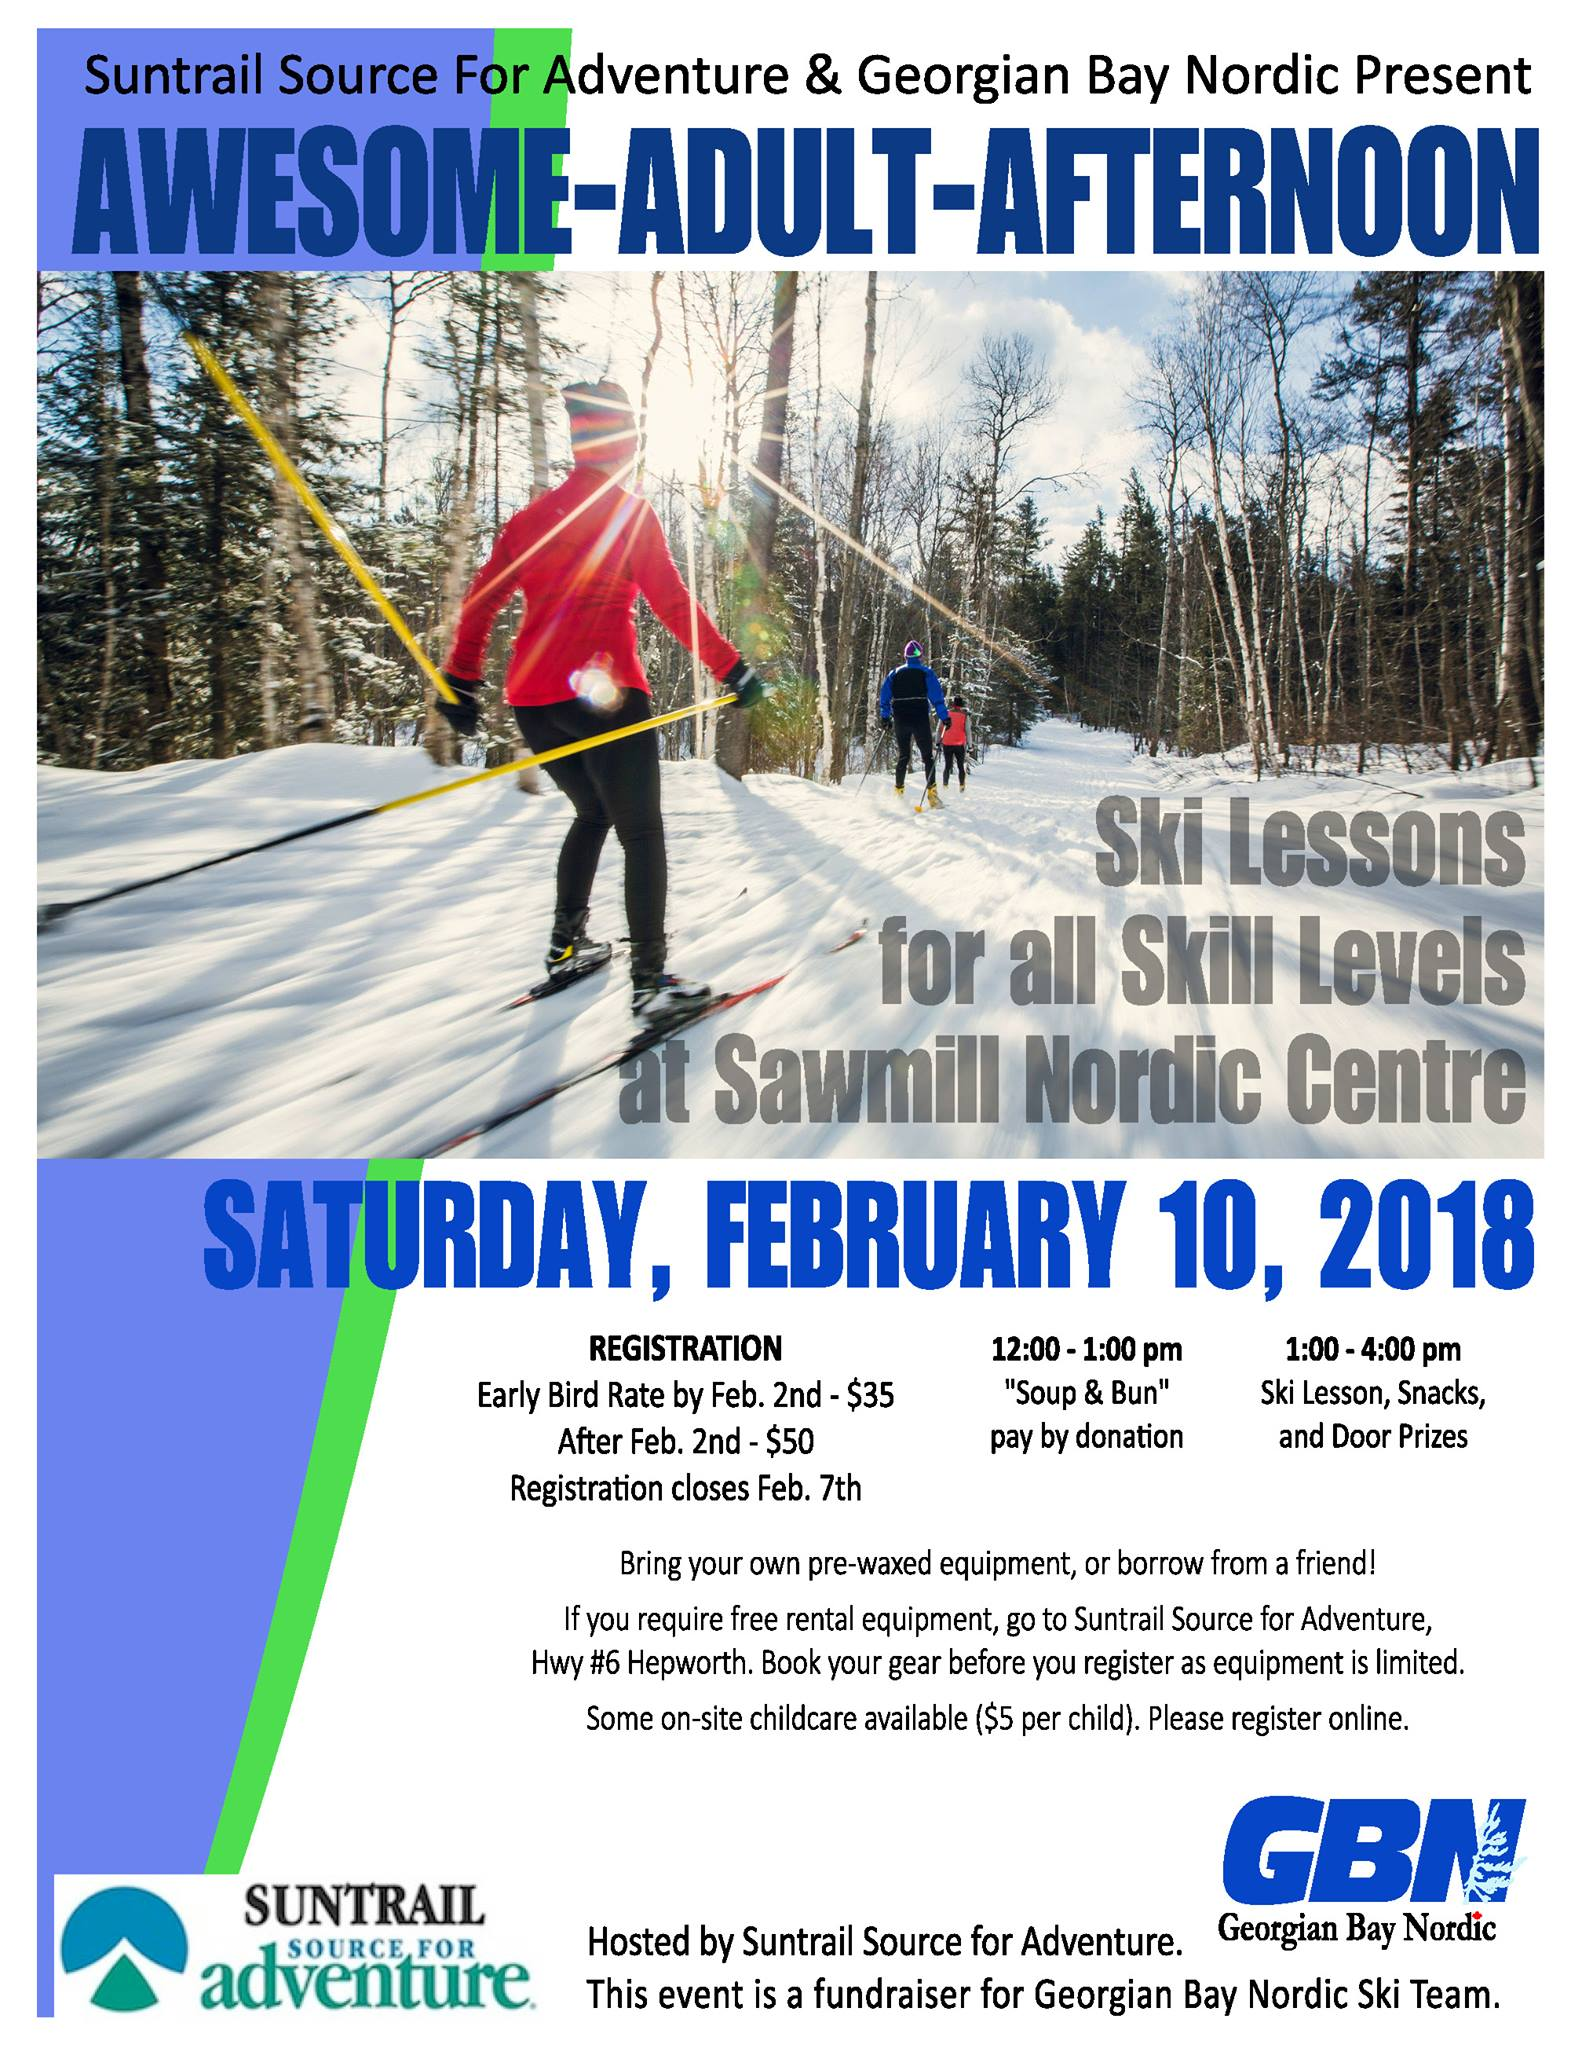 Awesome Adult Afternoon Ski Lesson 2018 poster